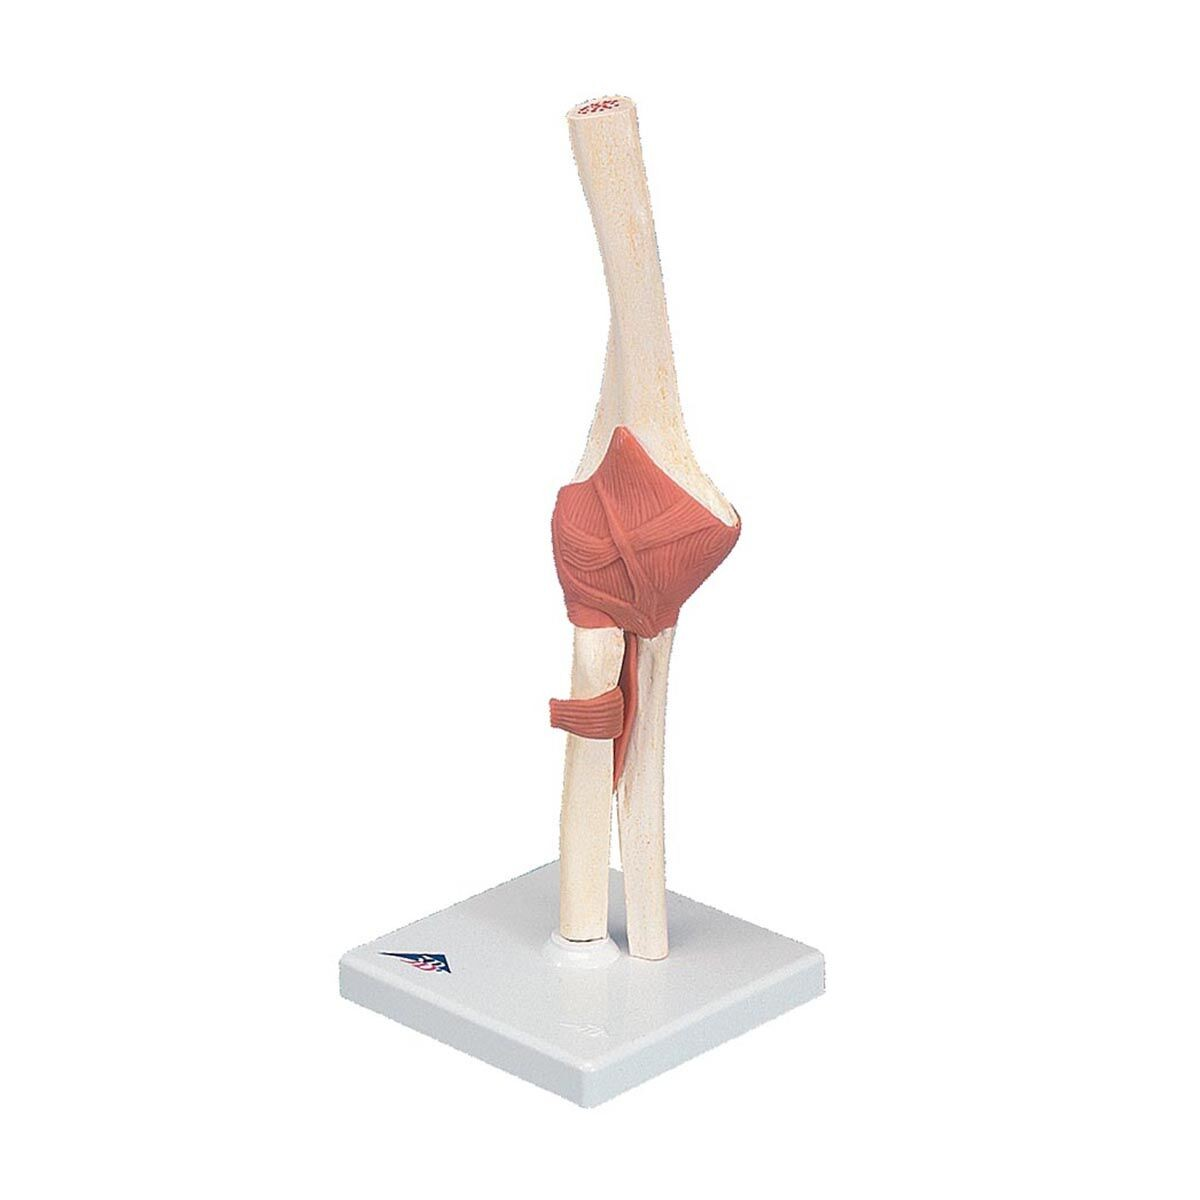 3b Deluxe Functional Elbow Joint Joints Skeletal System Human